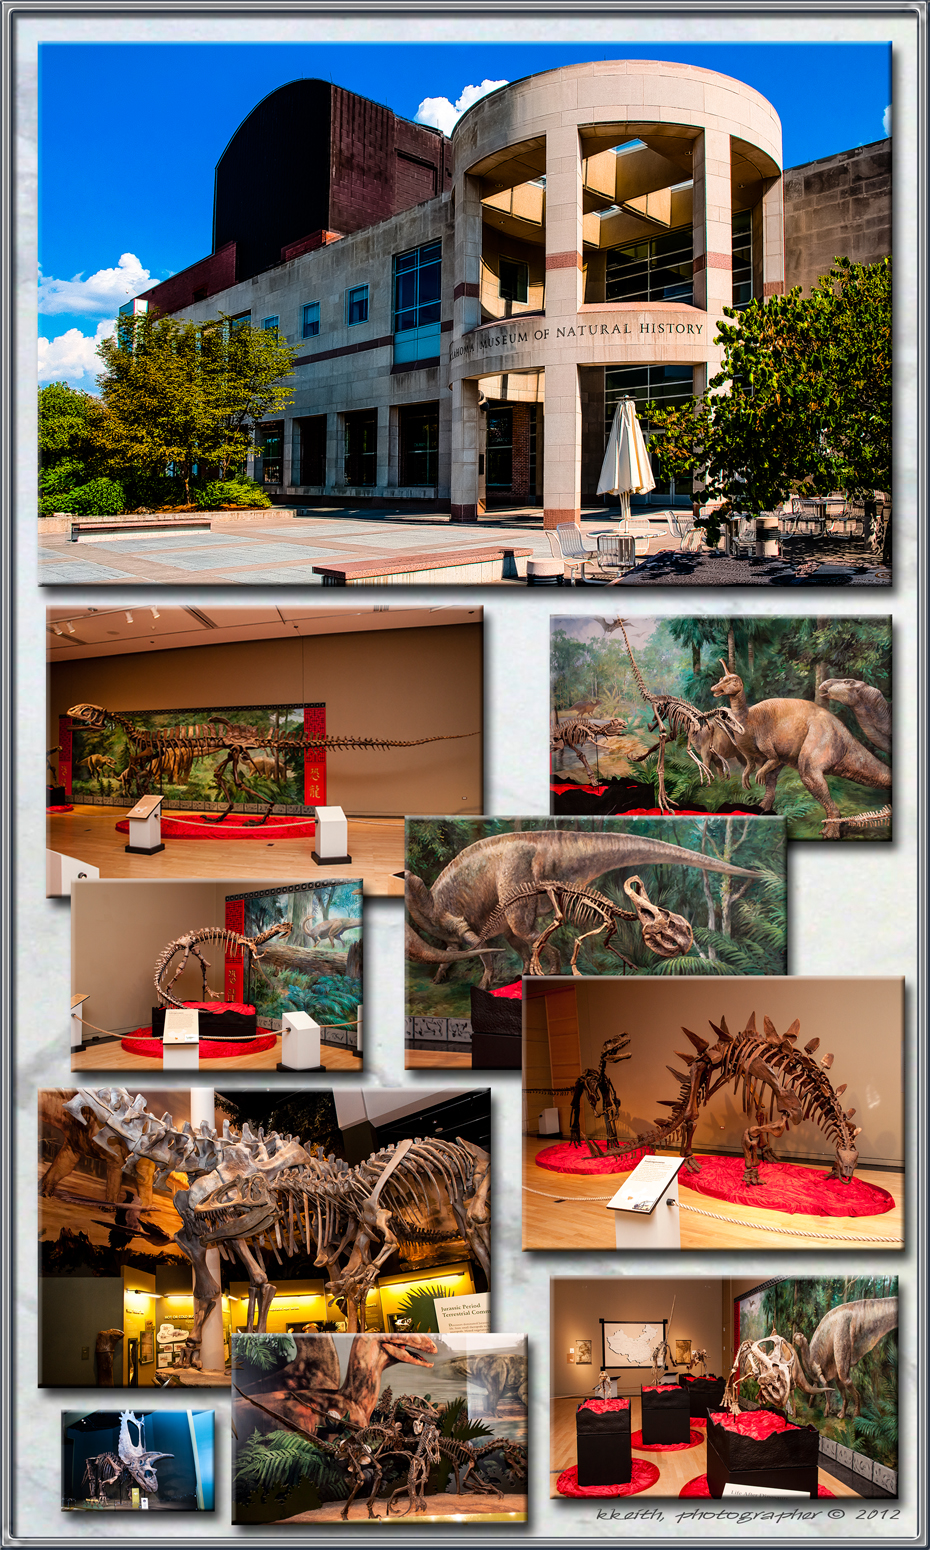 INCLUDES IMAGES FROM THE 'CHINASAURUS' EXHIBIT